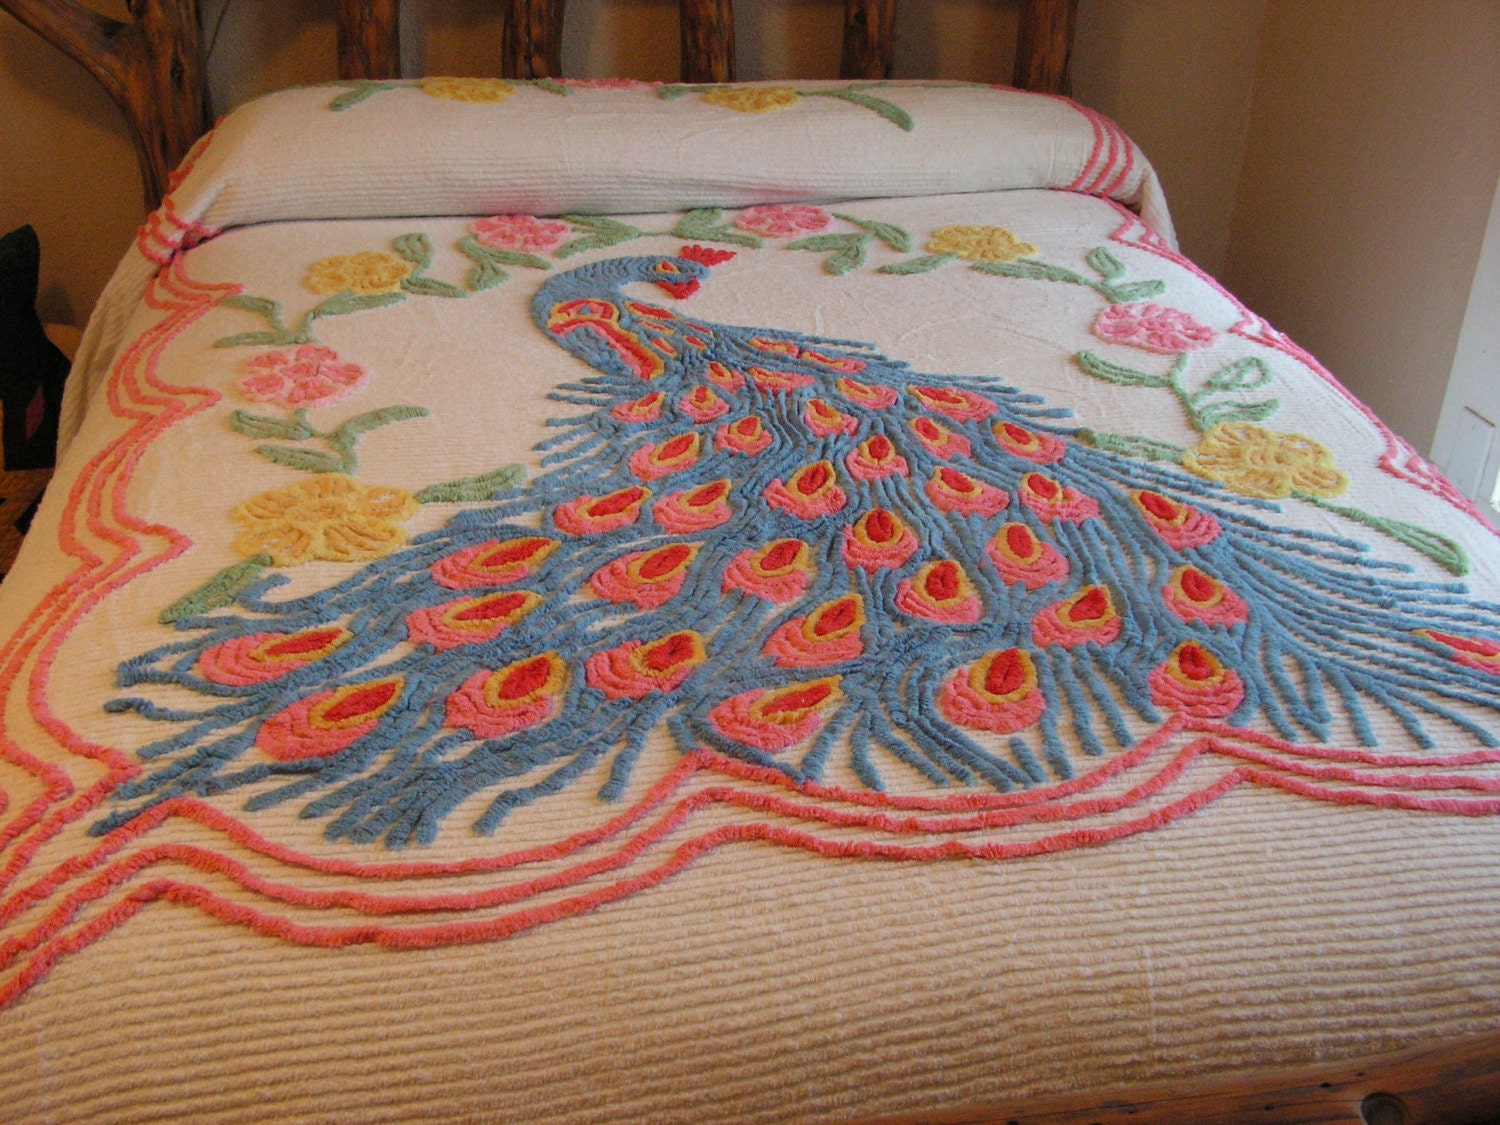 Vintage chenille peacock bedspread by buffalogalsgallery on etsy - Peacock bedspreads ...